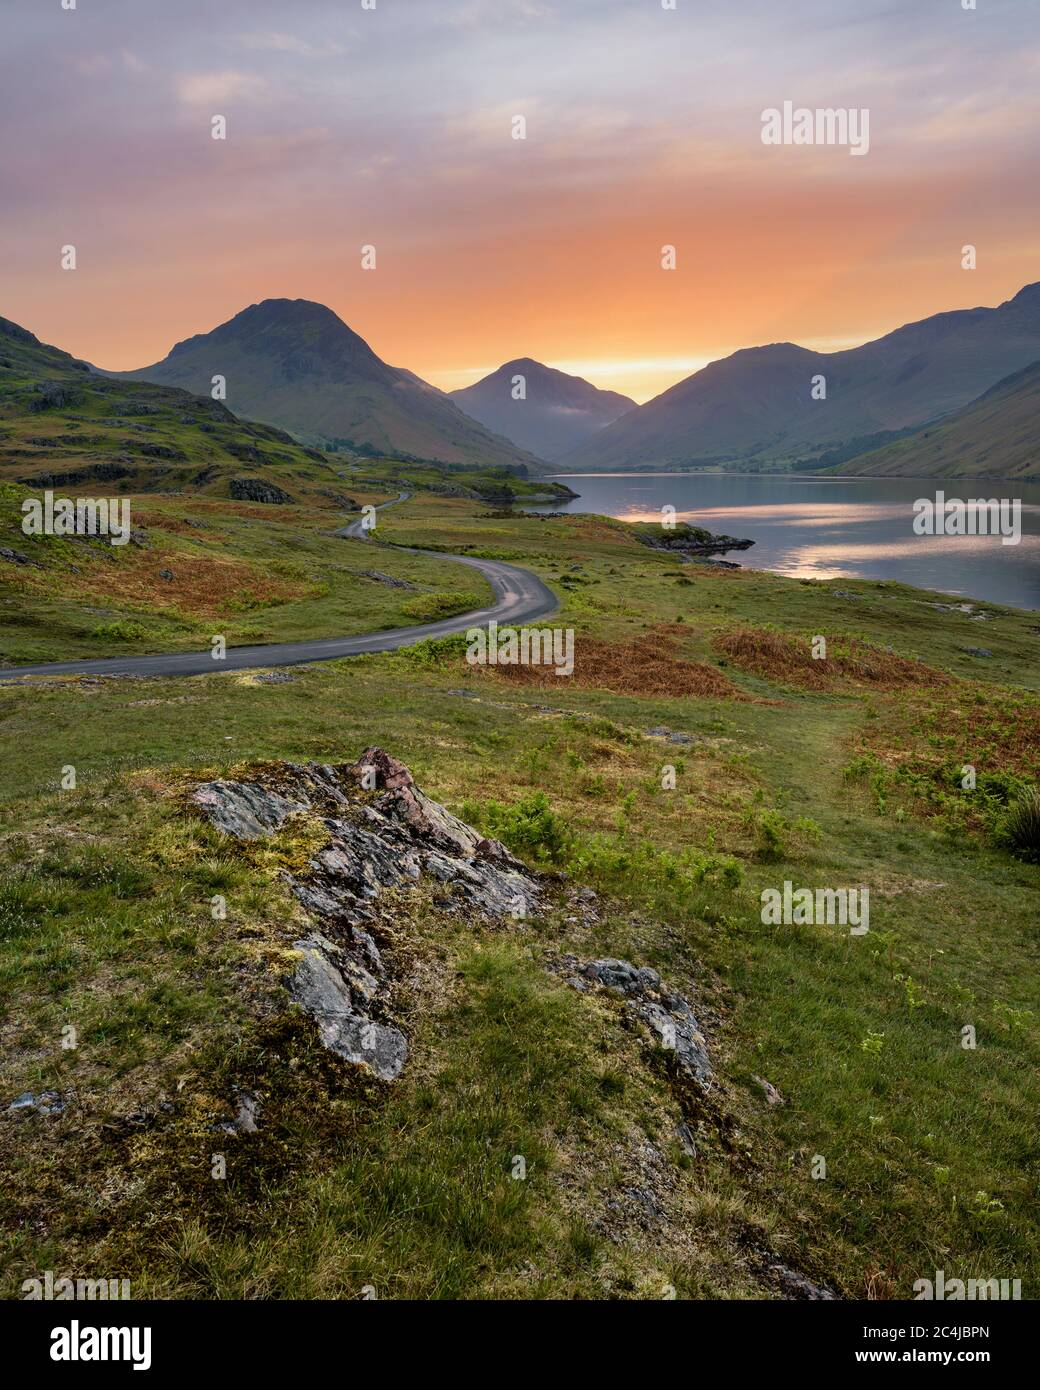 Winding Single Track Road Leading Through Green Secluded Countryside With Beautiful Sunrise. Wastwater, Lake District, UK. Stock Photo